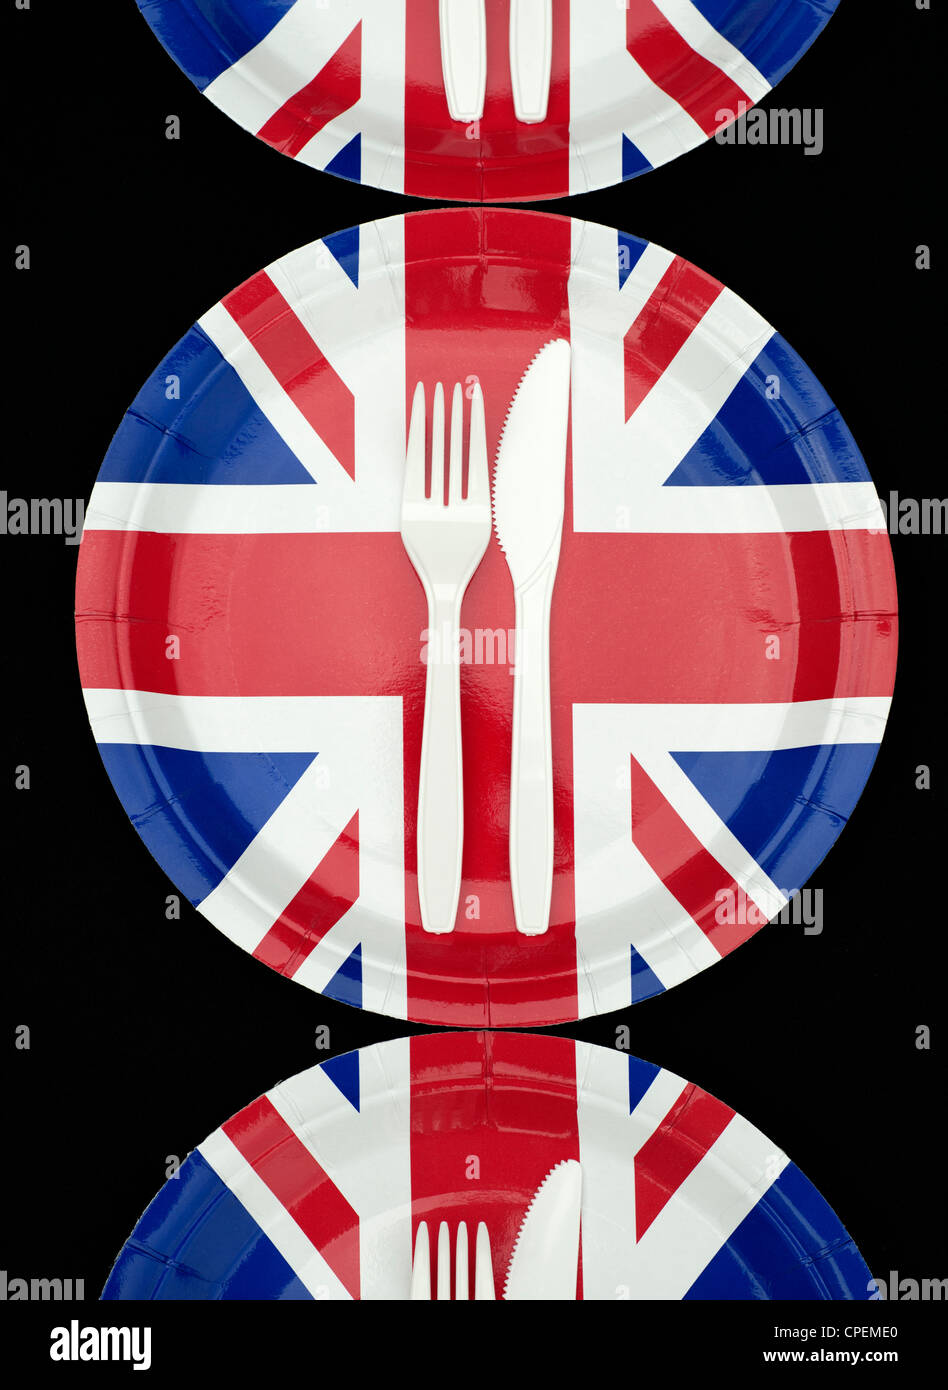 Union Jack Paper Plates with cutlery on a black background - Stock Image  sc 1 st  Alamy & Union Jack Paper Plates Stock Photos u0026 Union Jack Paper Plates Stock ...